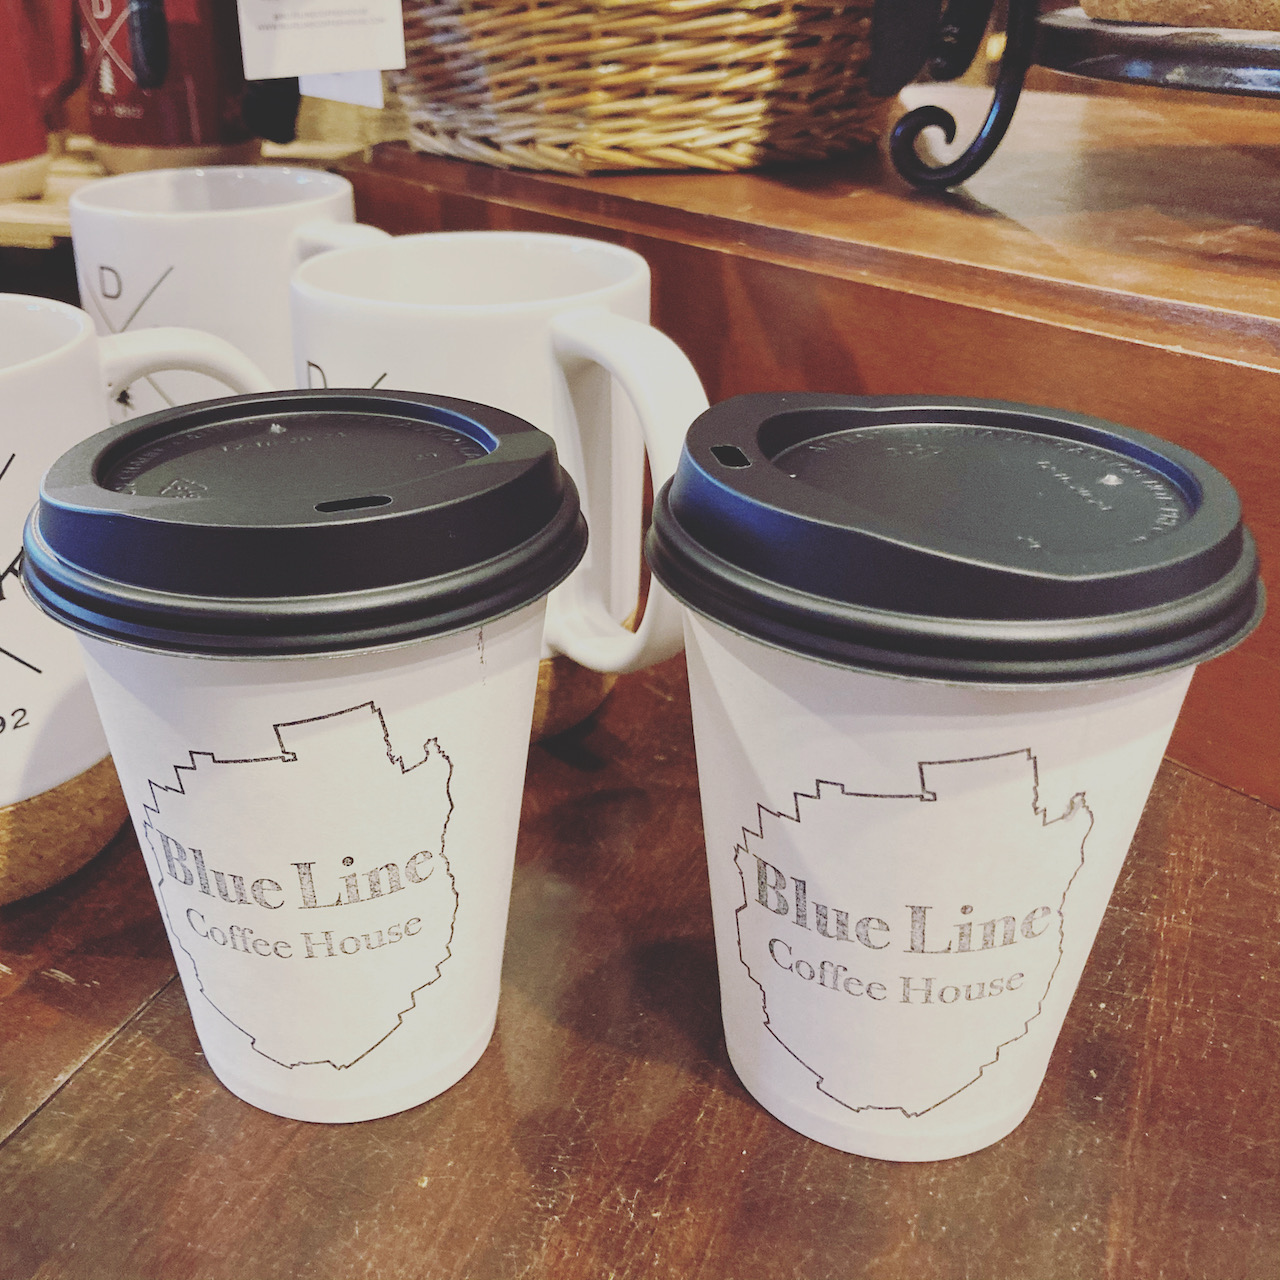 Two paper coffee cups on wooden tables each cup says BLUE LINE COFFEE HOUSE.